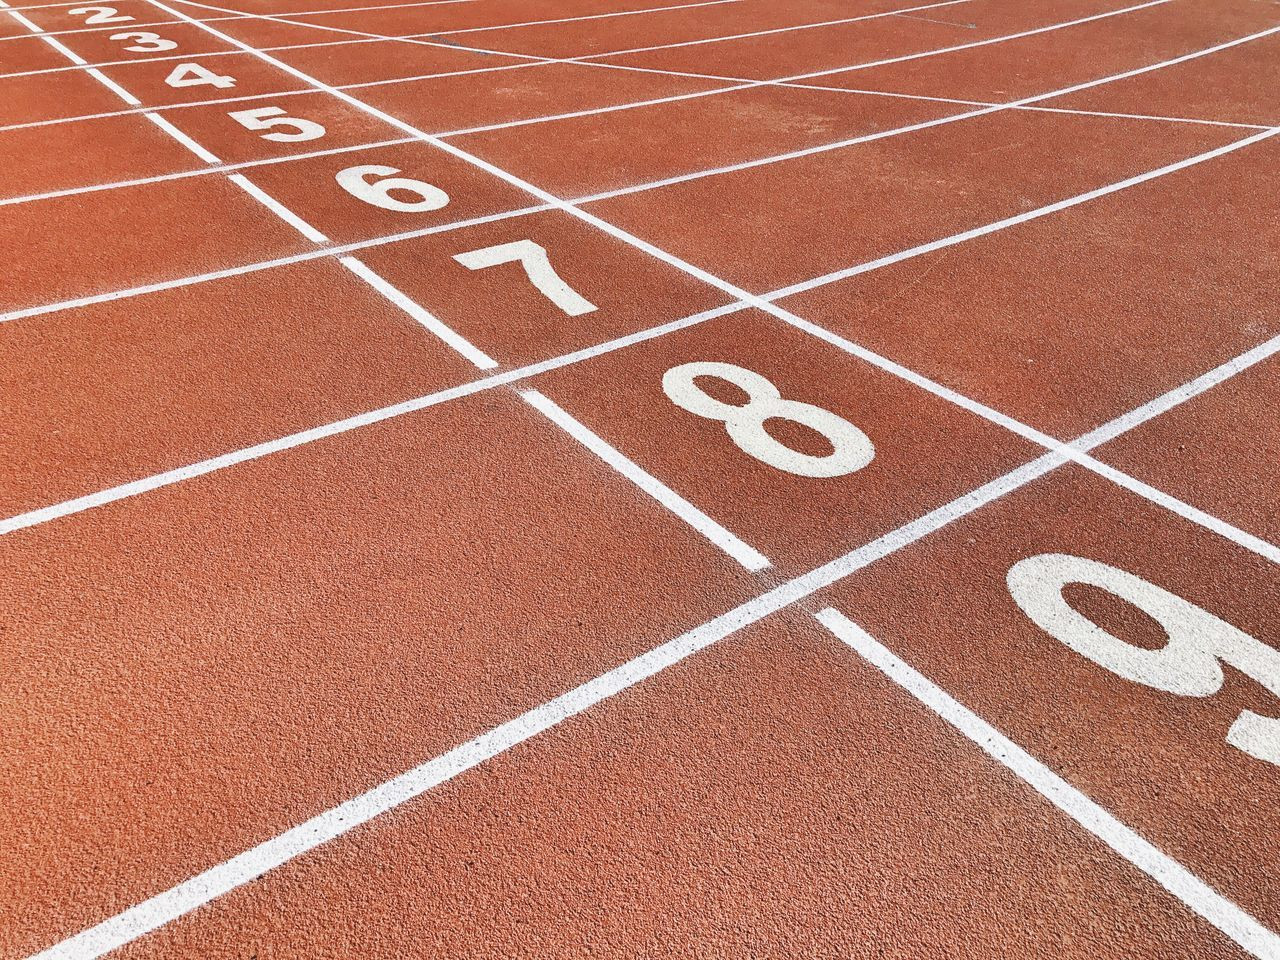 Number Running Track Track And Field Competition Sports Track Sports Race Starting Line Sport International Multi-sport Event No People Competitive Sport Track Event Close-up Track And Field Athlete Beginnings Finish Line  Outdoors Day Sprinting